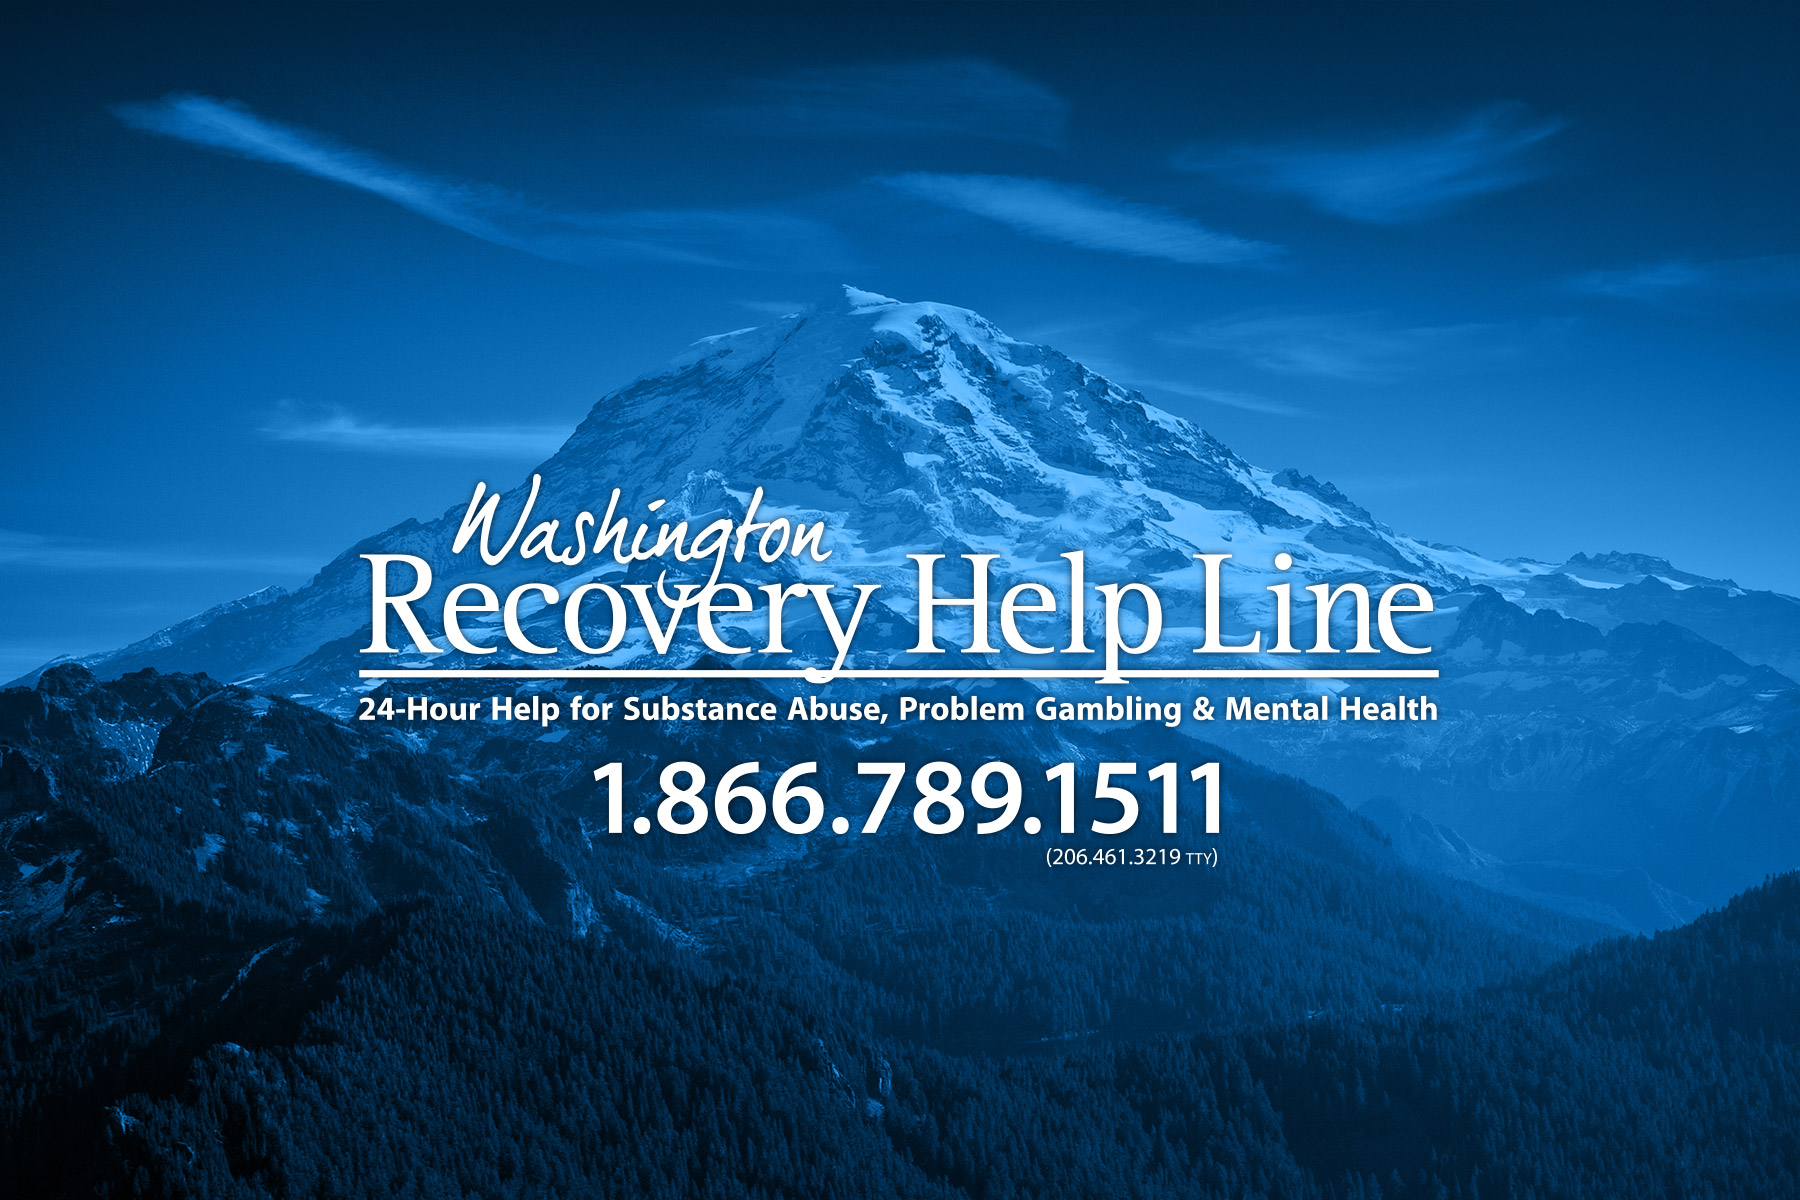 Washington Recovery Help Line